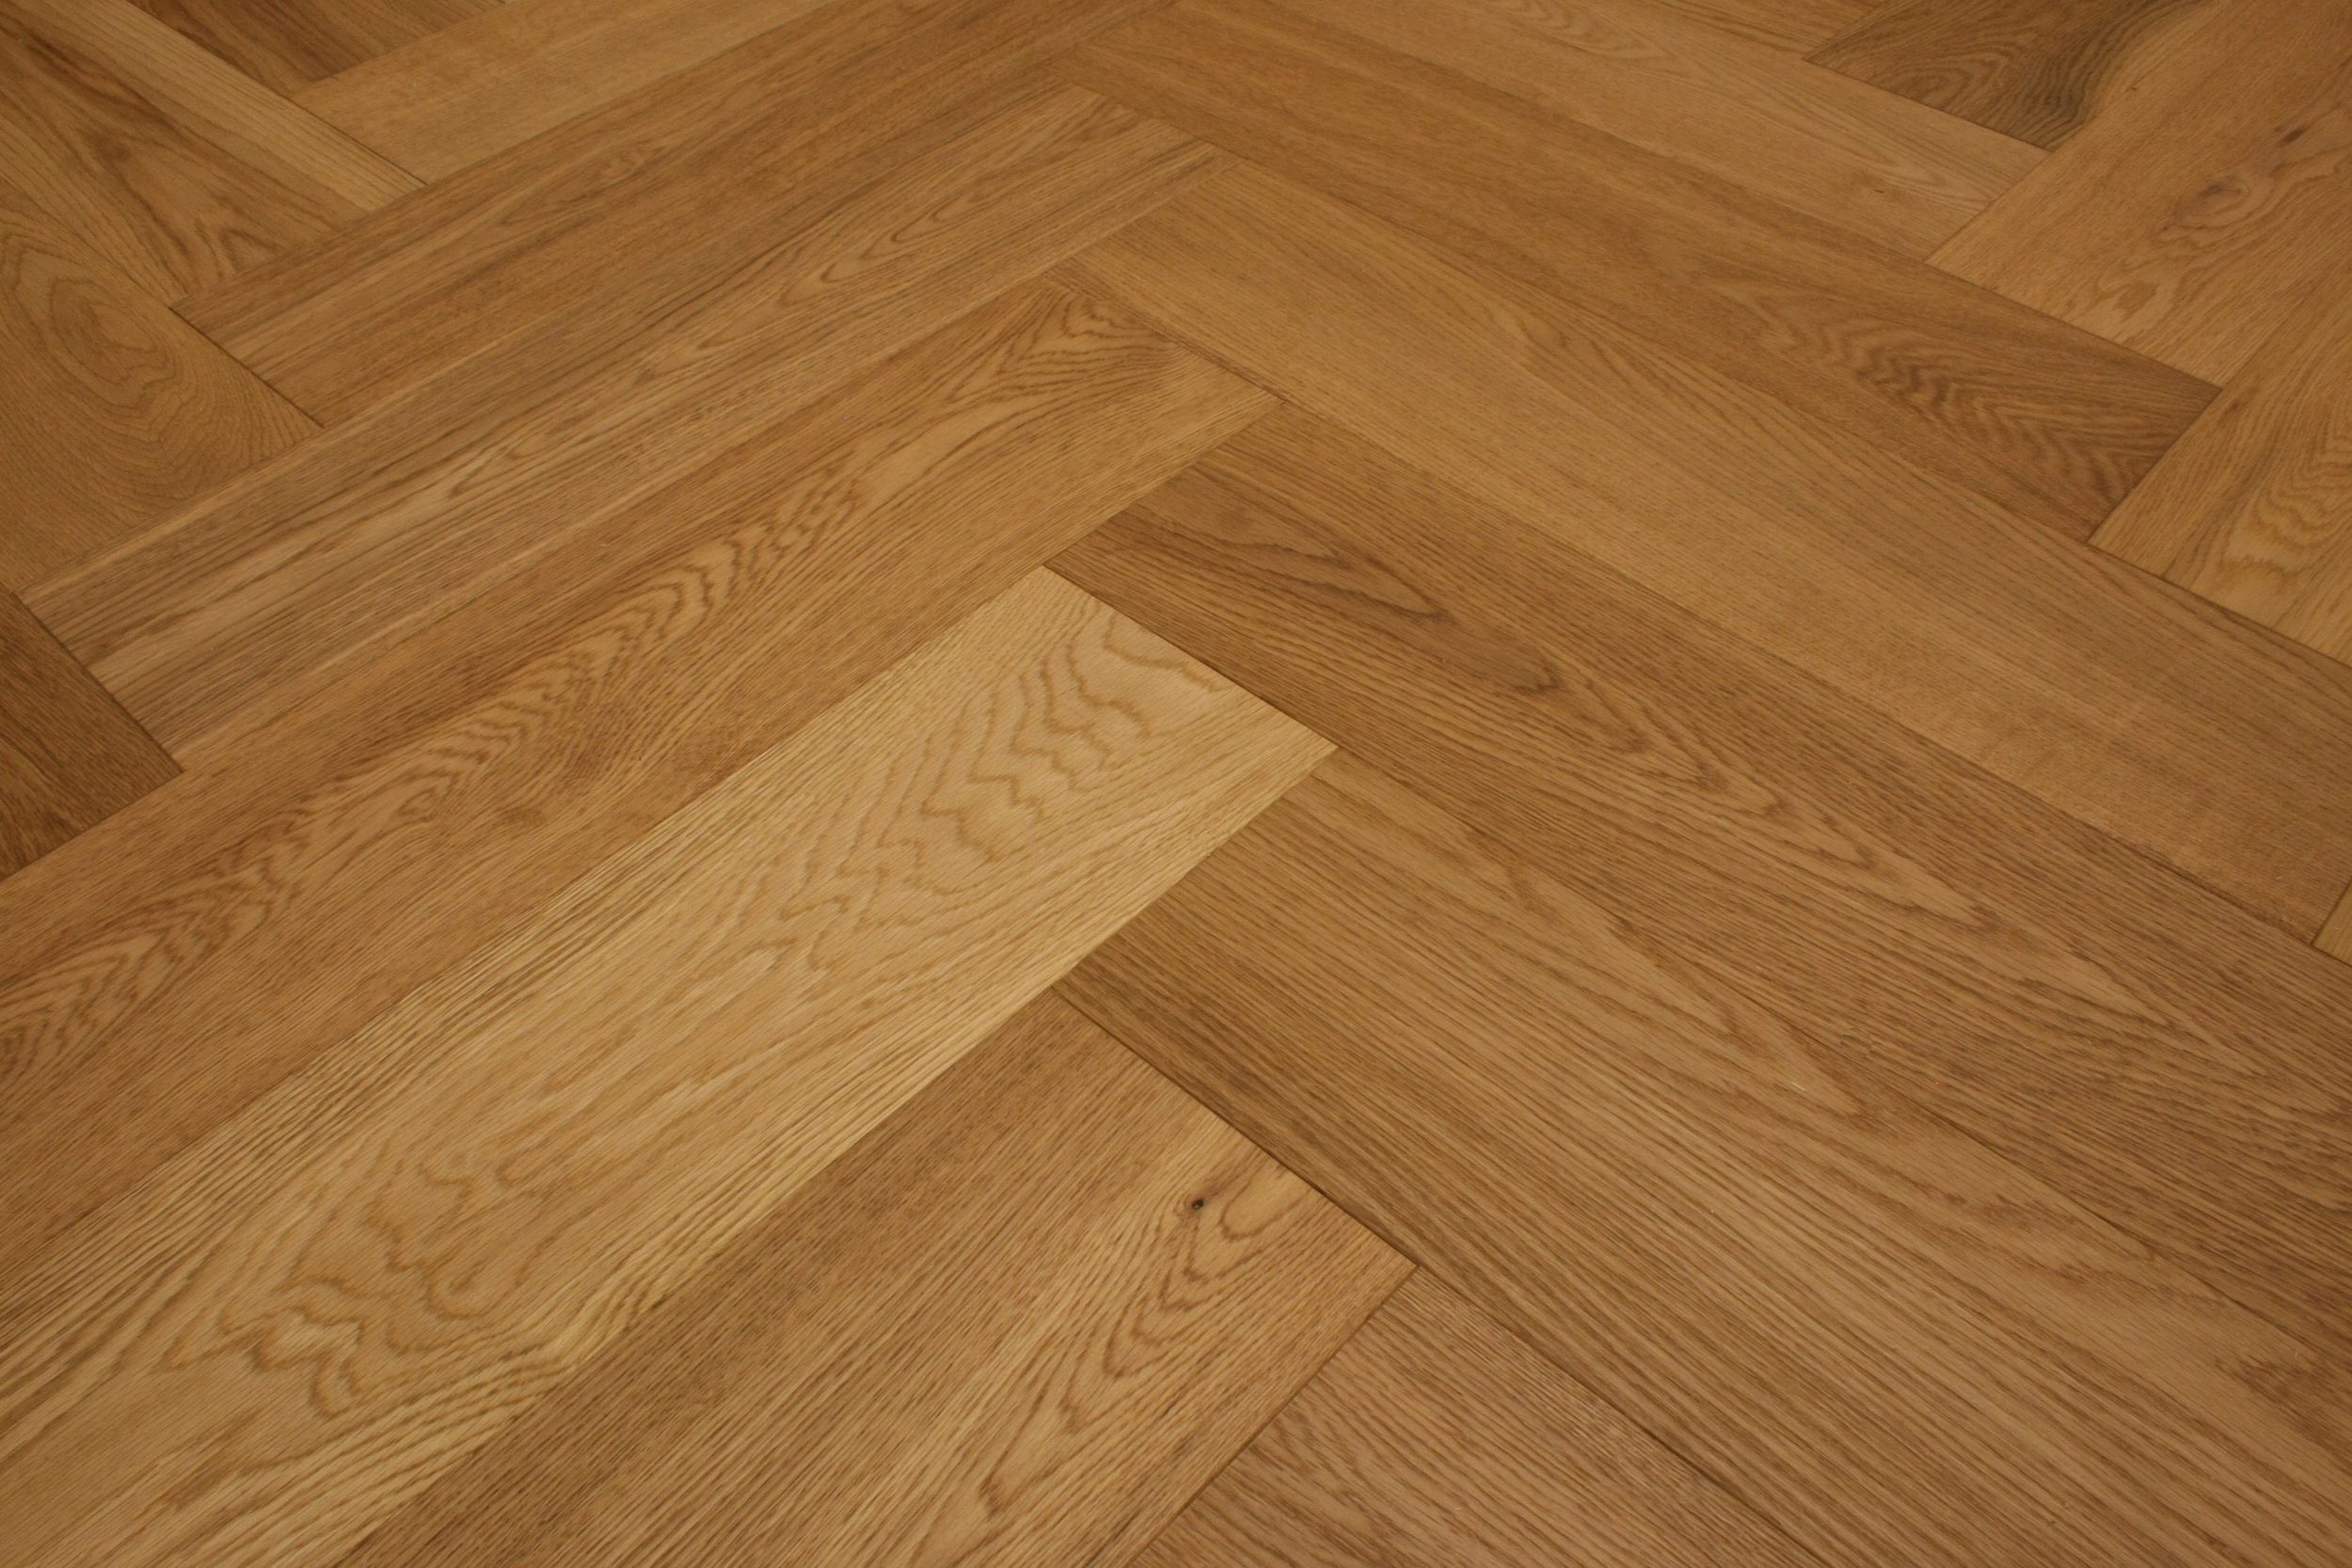 Engineered oak herringbone wood blocks london stock for Wood floor knocking block